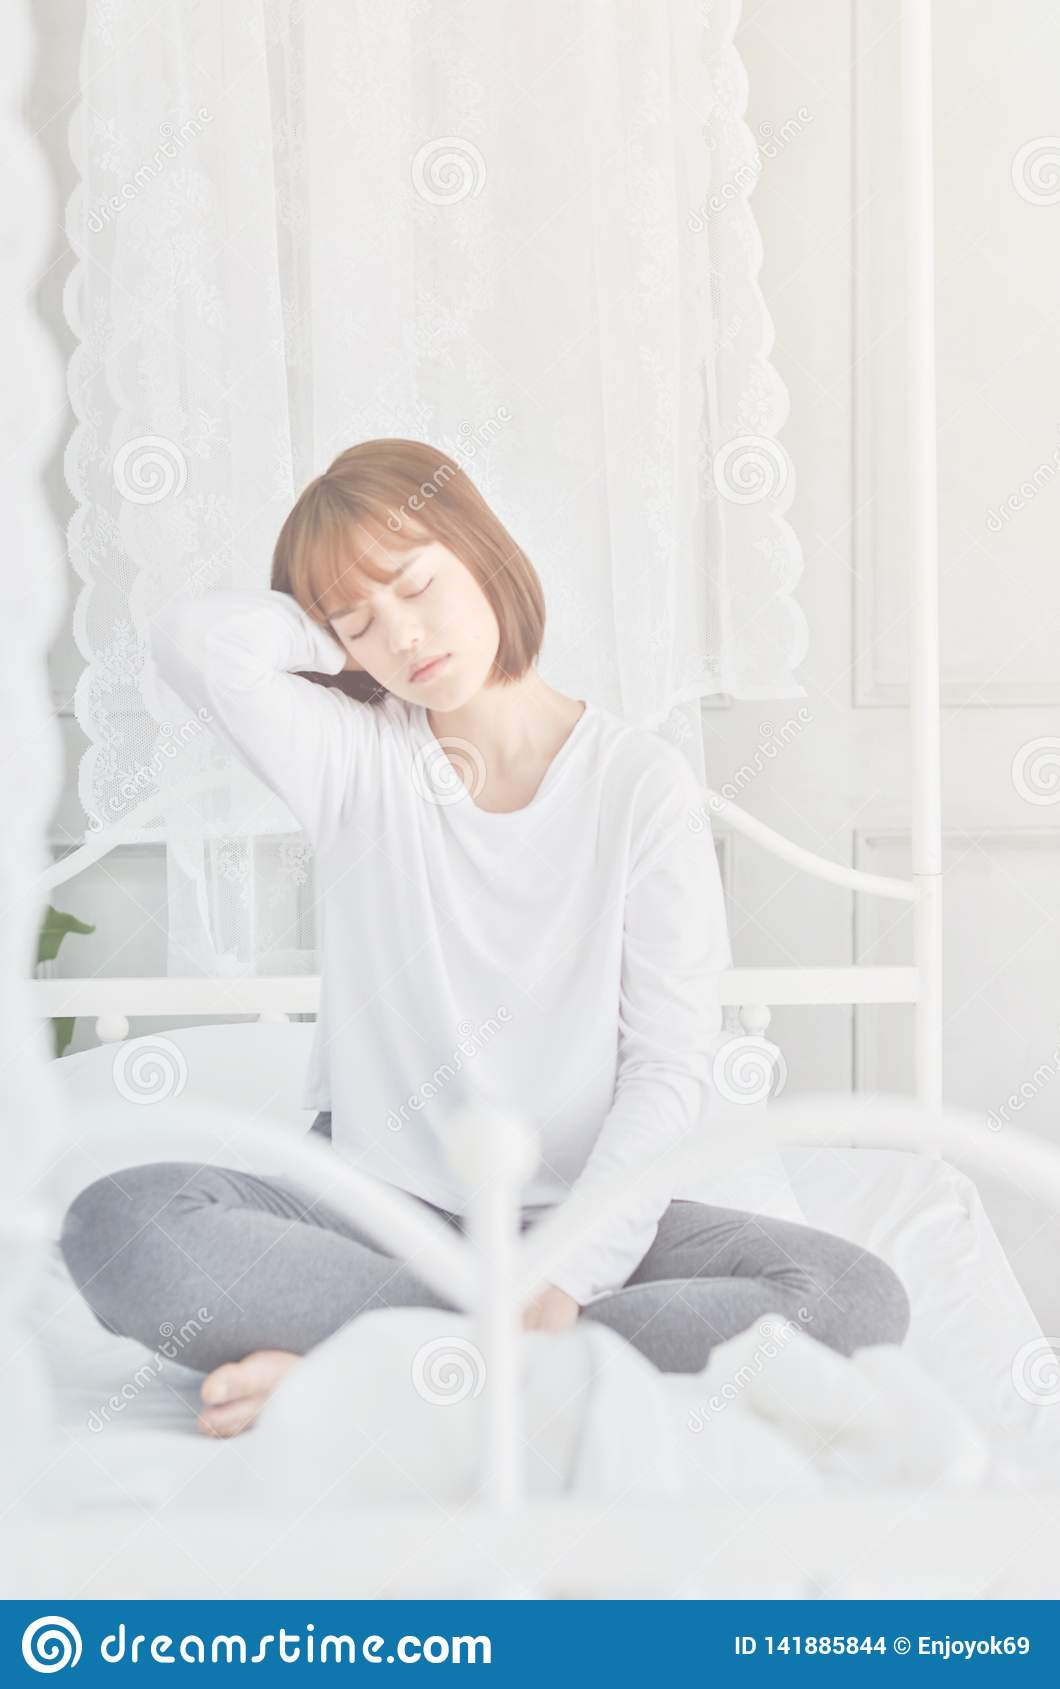 d3594387a05 Women Sit At The Edge Of The Bed. Stock Photo - Image of person ...